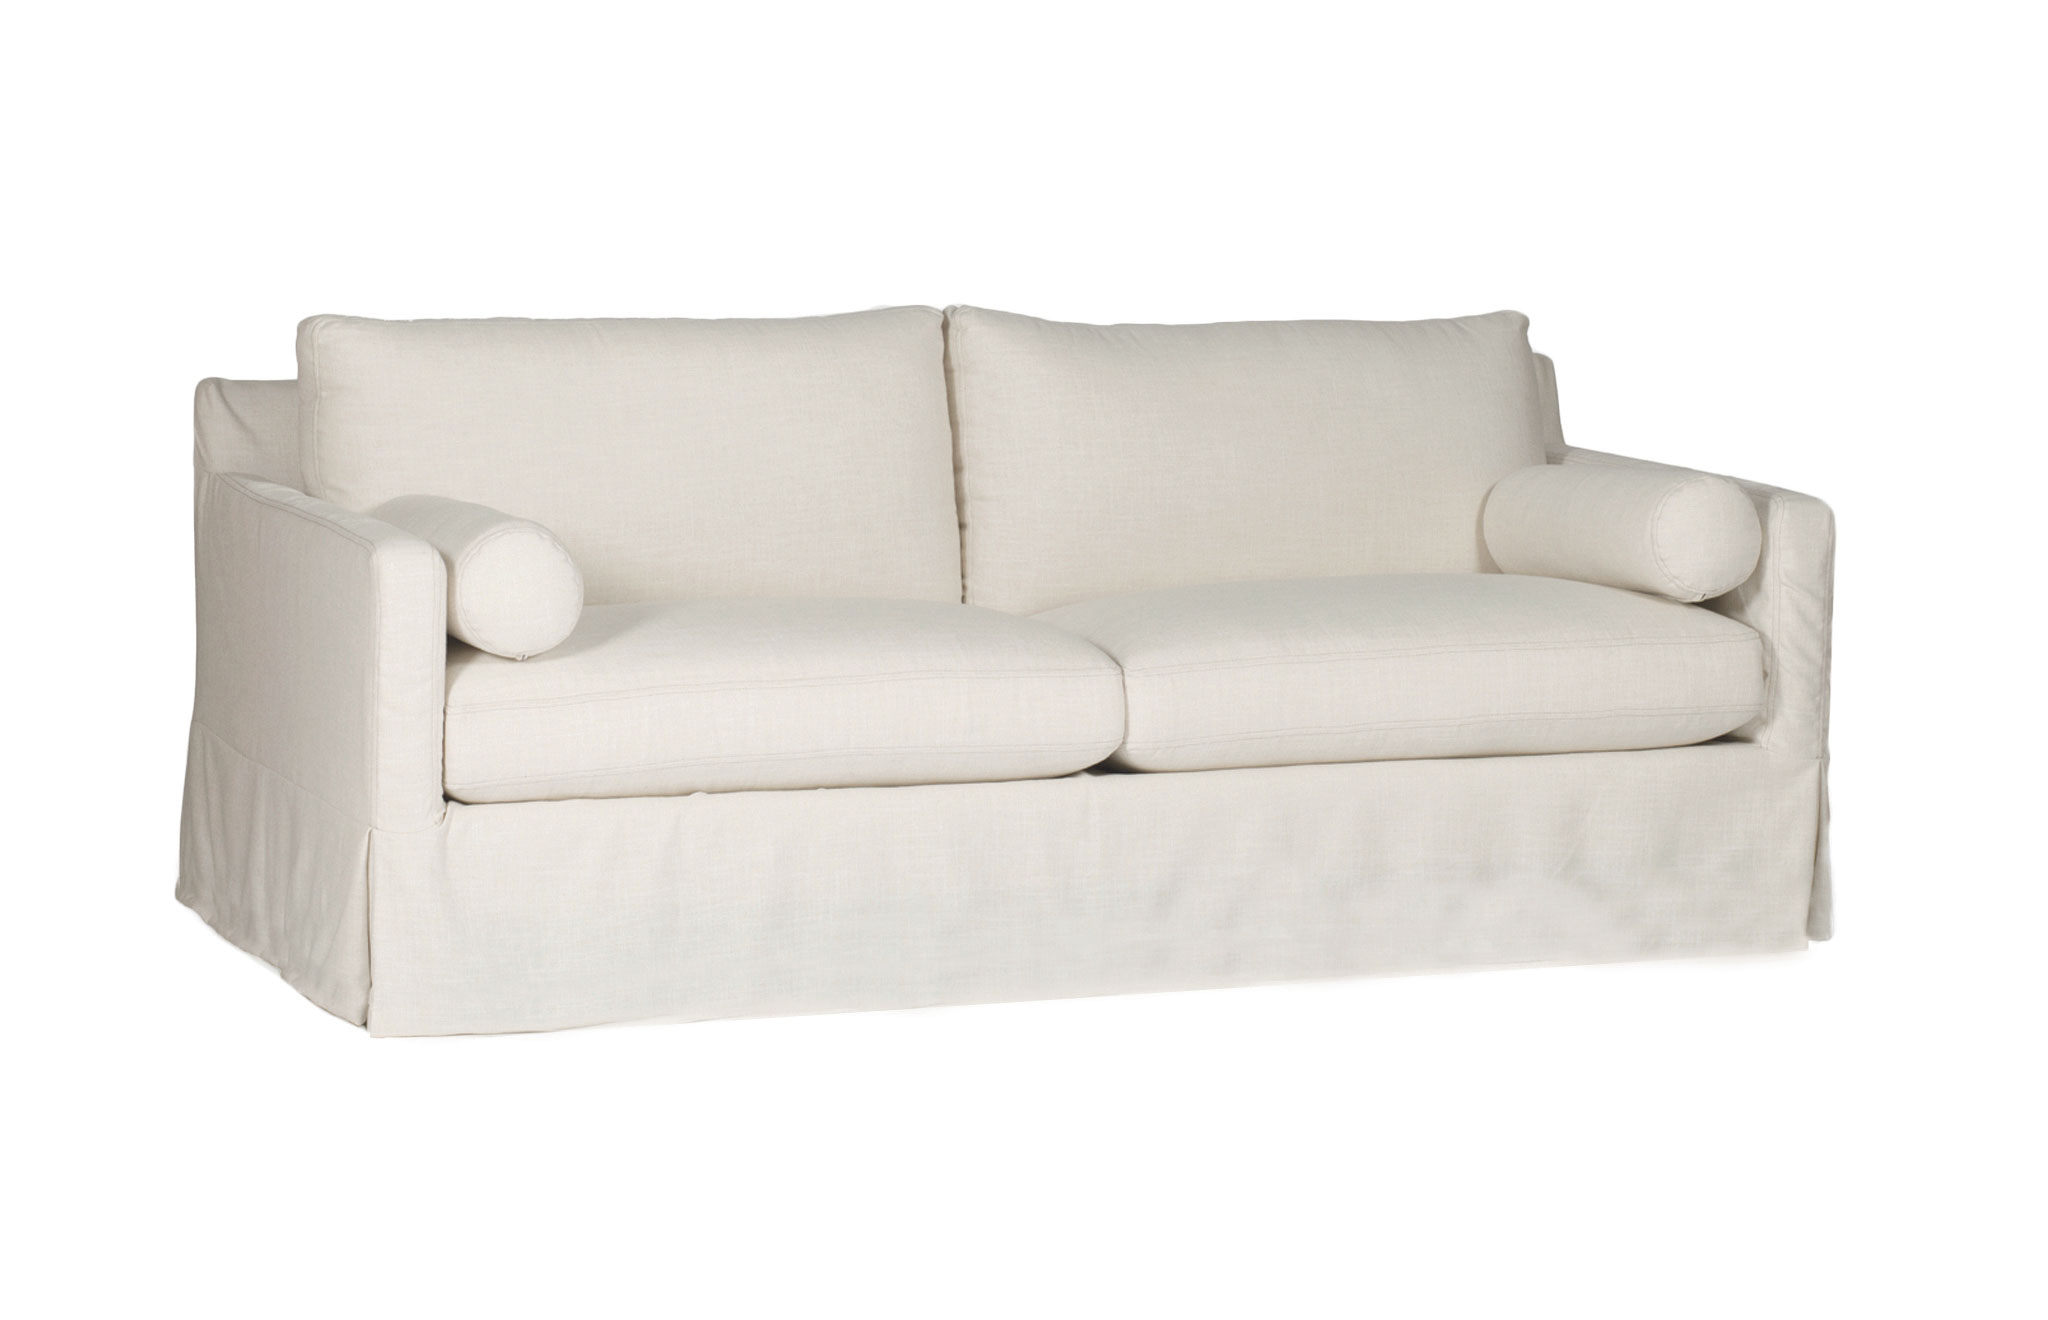 Transitional Slipcovered Sofa Hayes Sofa ~ What Is A Transitional Sofa